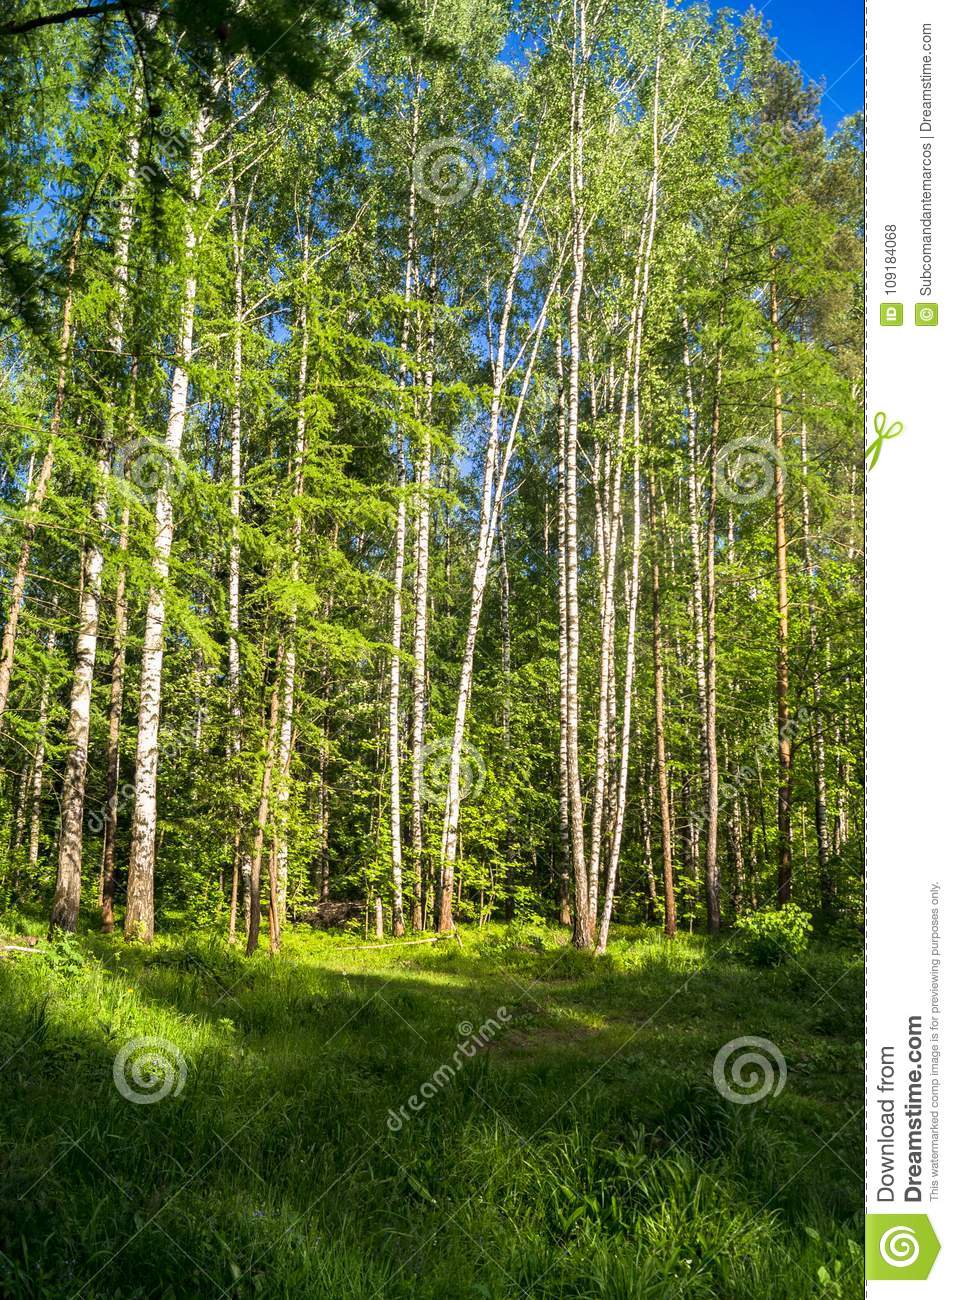 Vibrant summer landscape. Mixed forest on the sunny day.